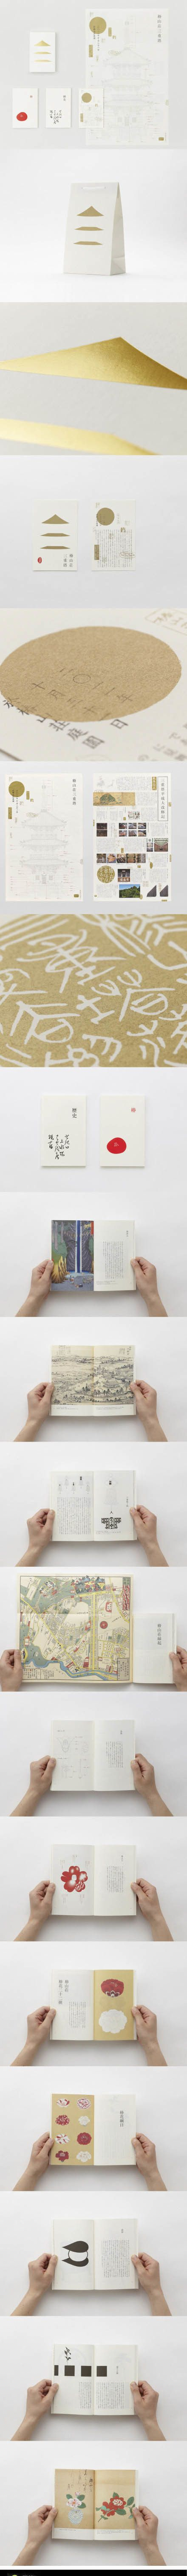 Japanese book design